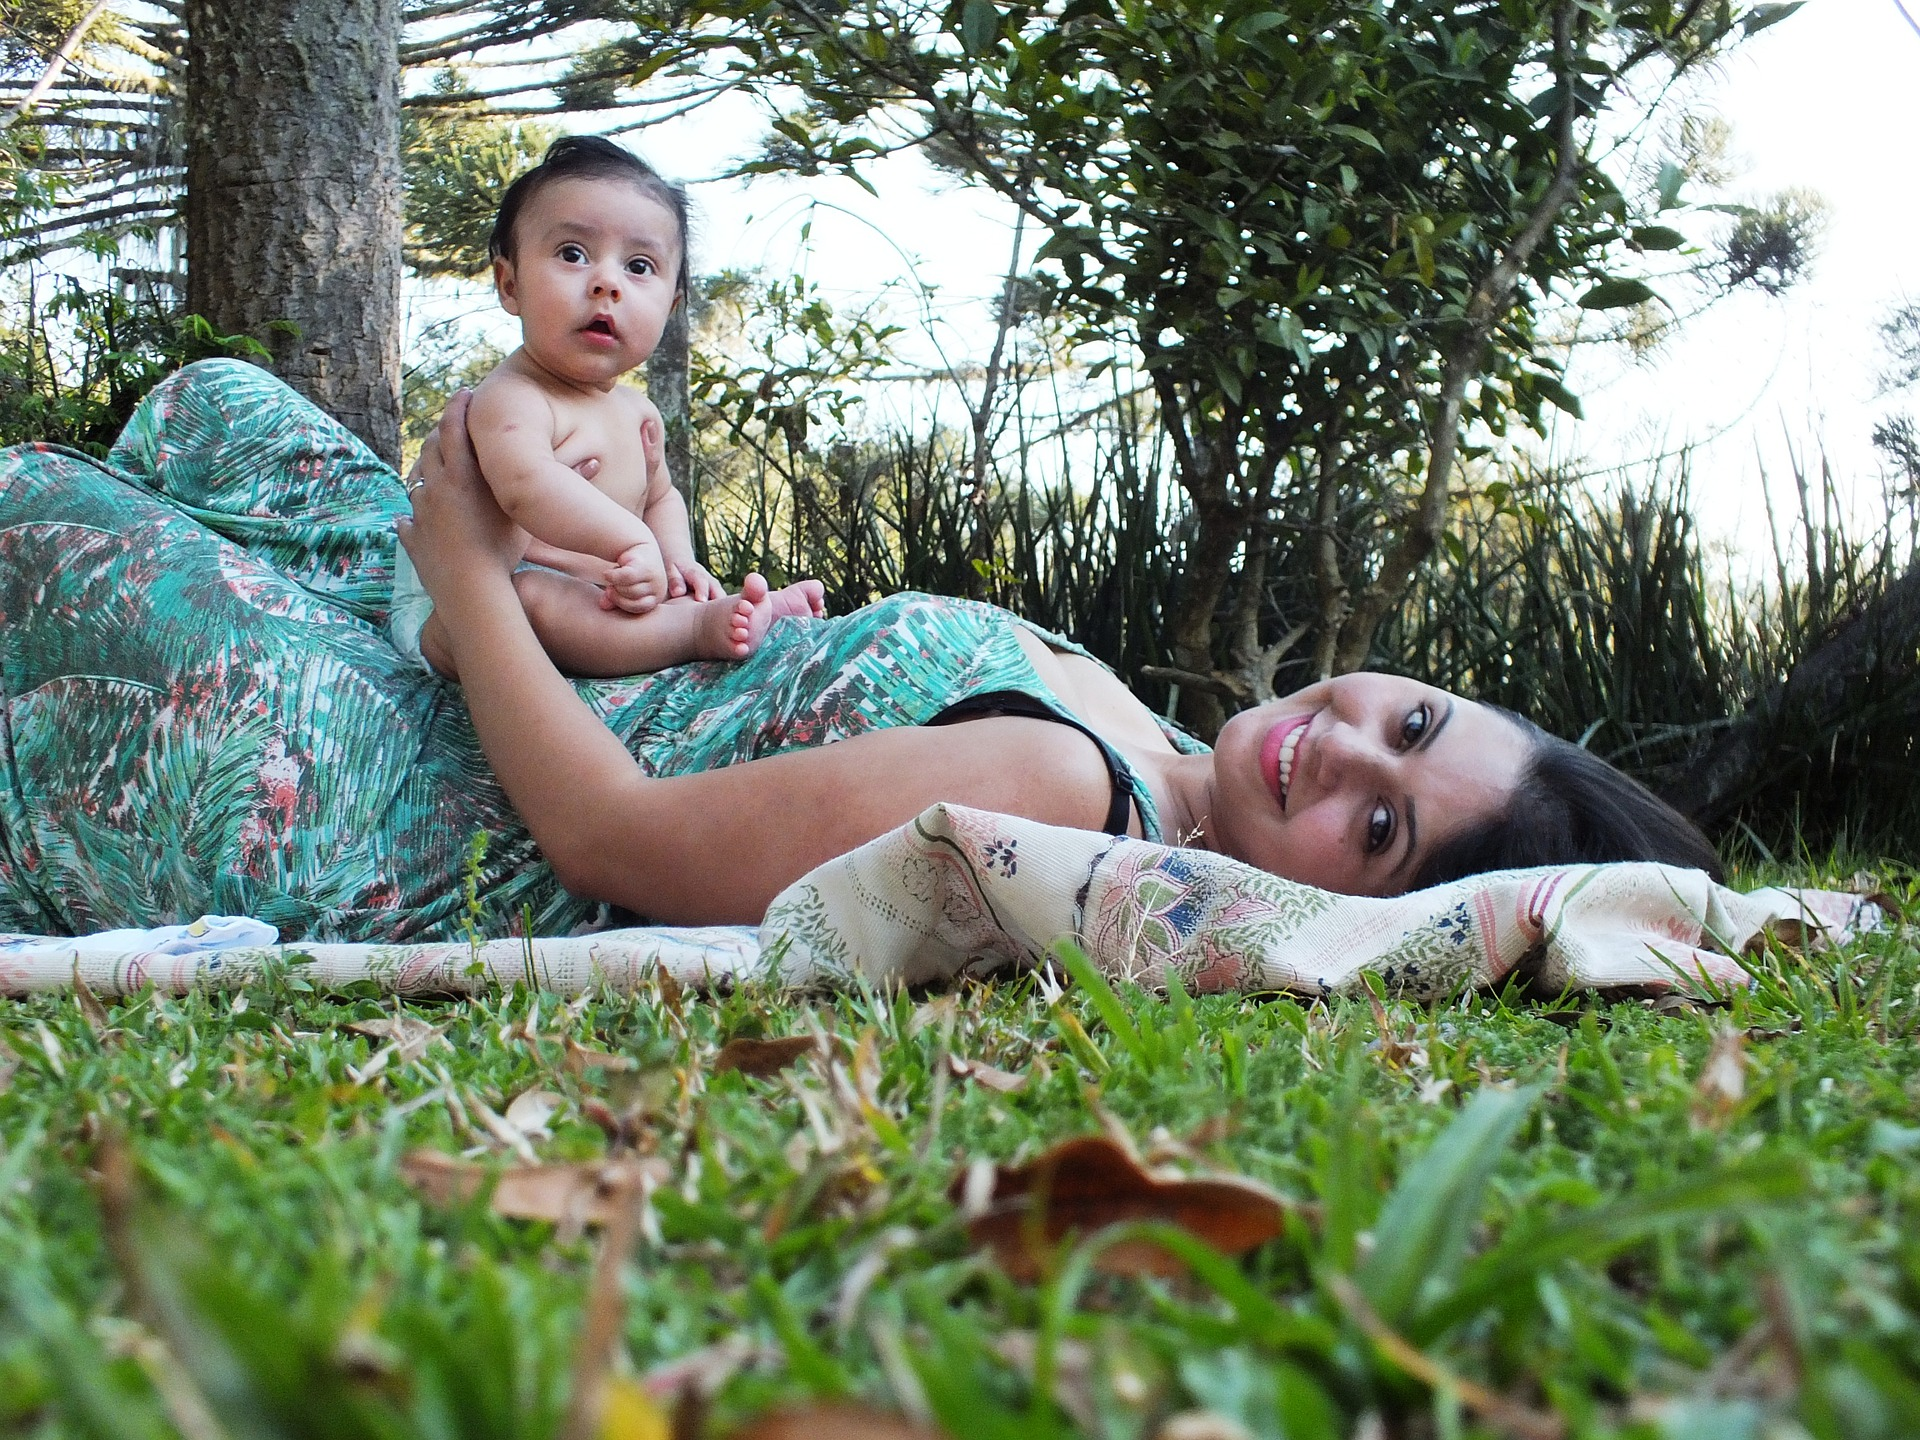 Mom laying on the grass with baby balanced on her belly, smiling at the camera [Rising Tide Women's Whole Life Wellness]